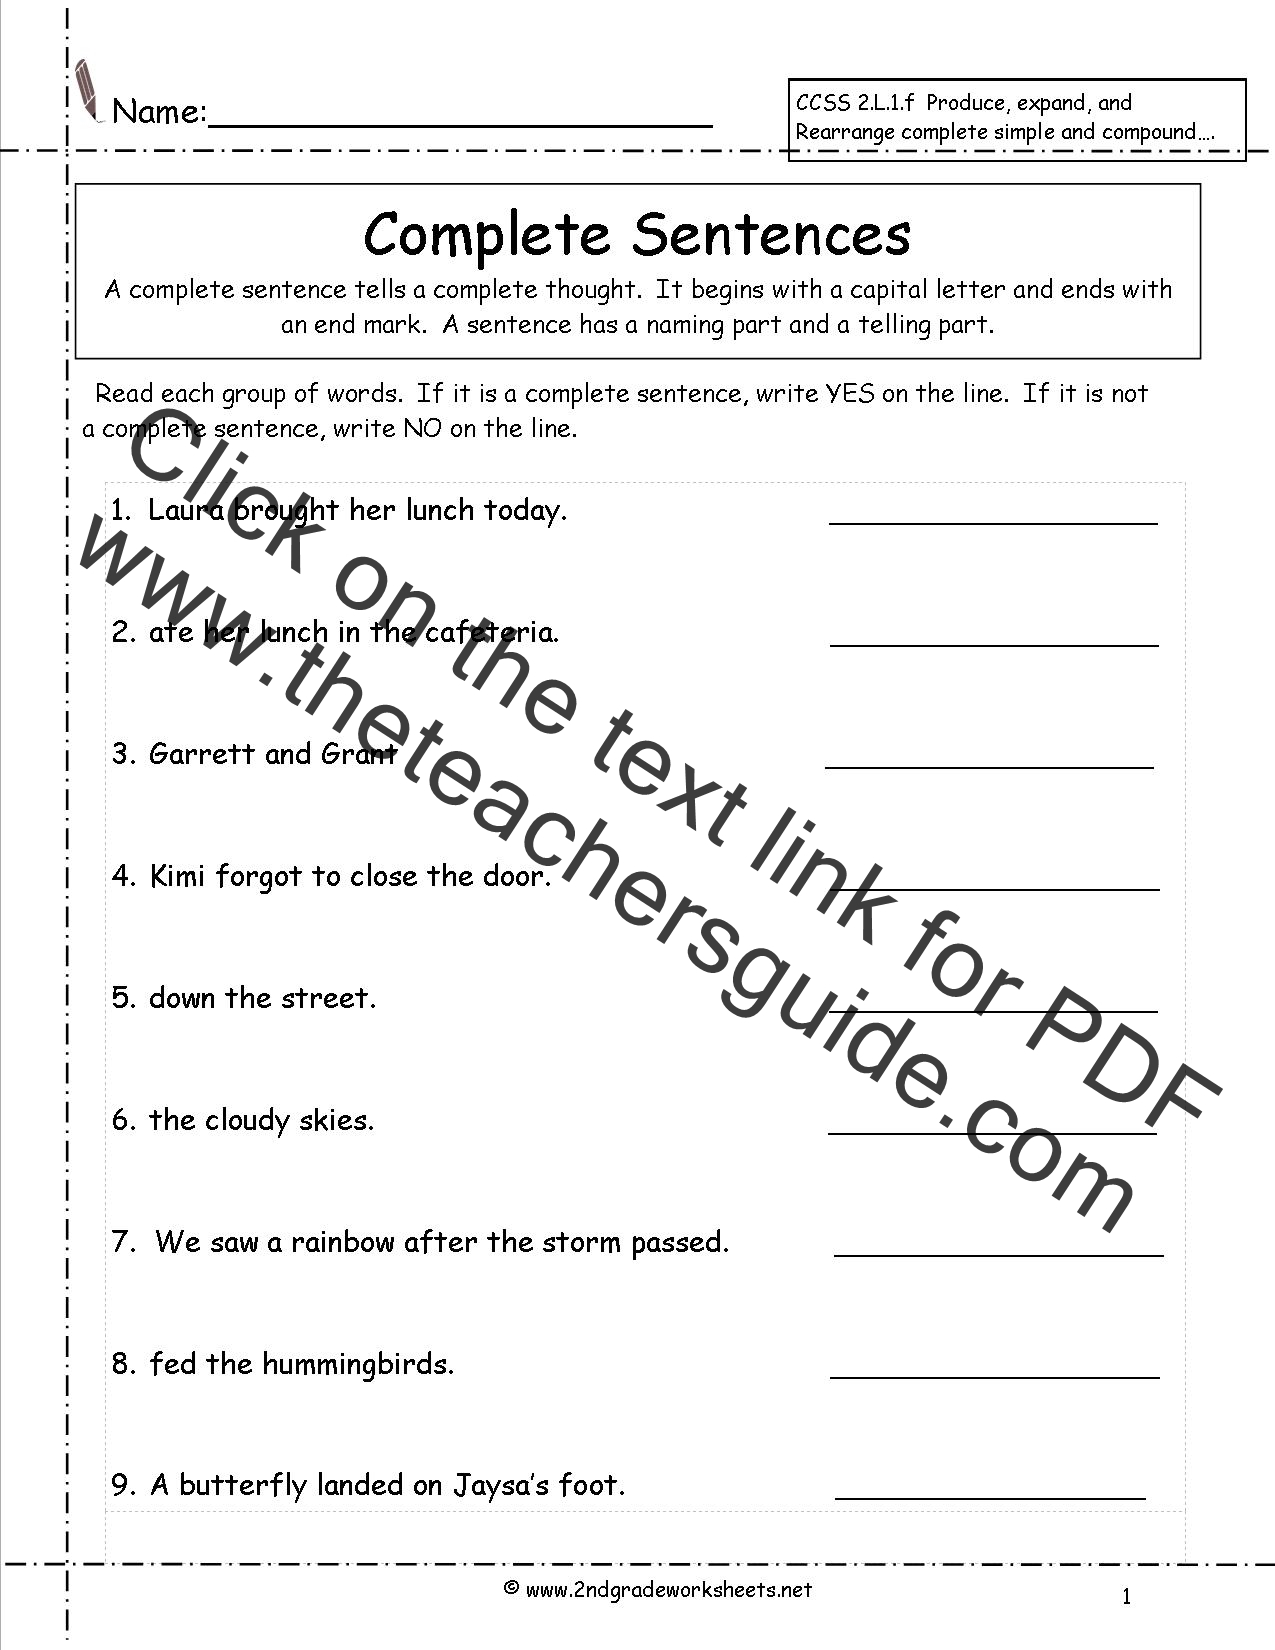 Printables Sentence Correction Worksheets second grade sentences worksheets ccss 2 l 1 f complete worksheets